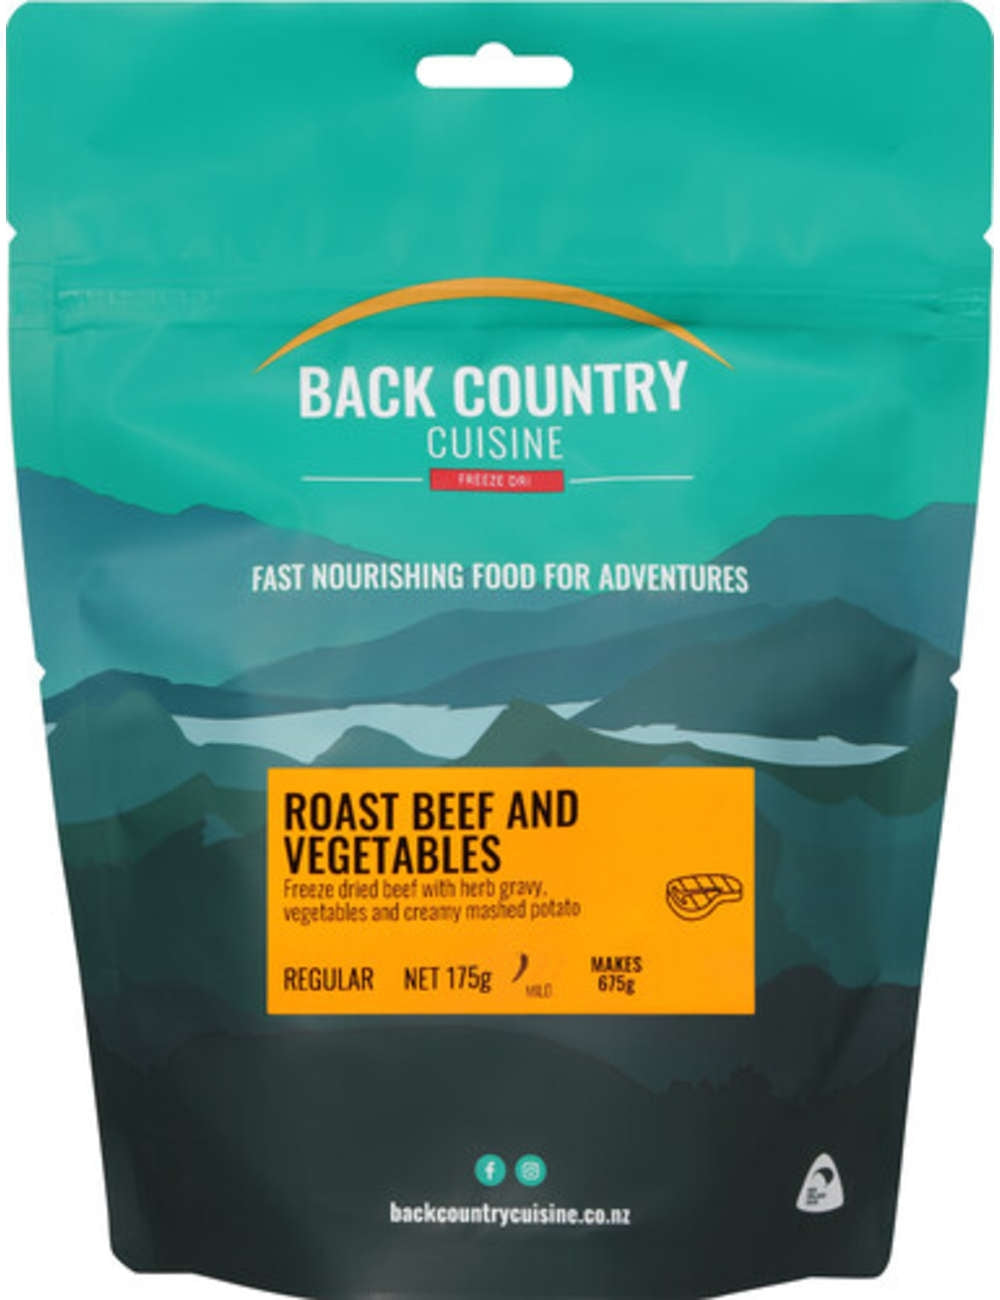 Back Country Cuisine Roast Beef and Vegetables - Find Your Feet Australia Hobart Launceston Tasmania